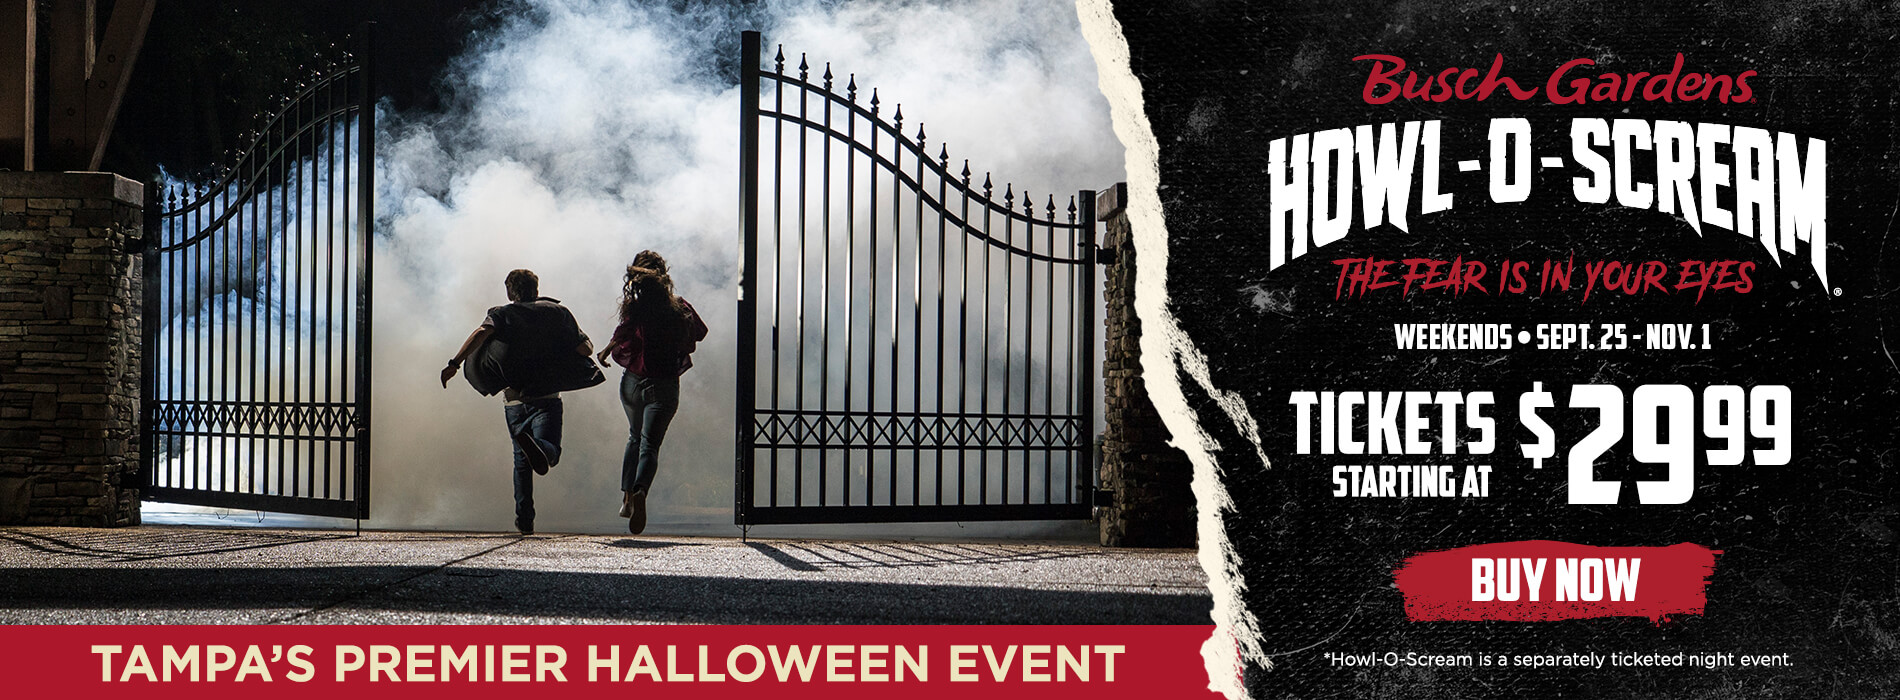 Tampa's Premier Halloween Event Tickets Starting at $29.99